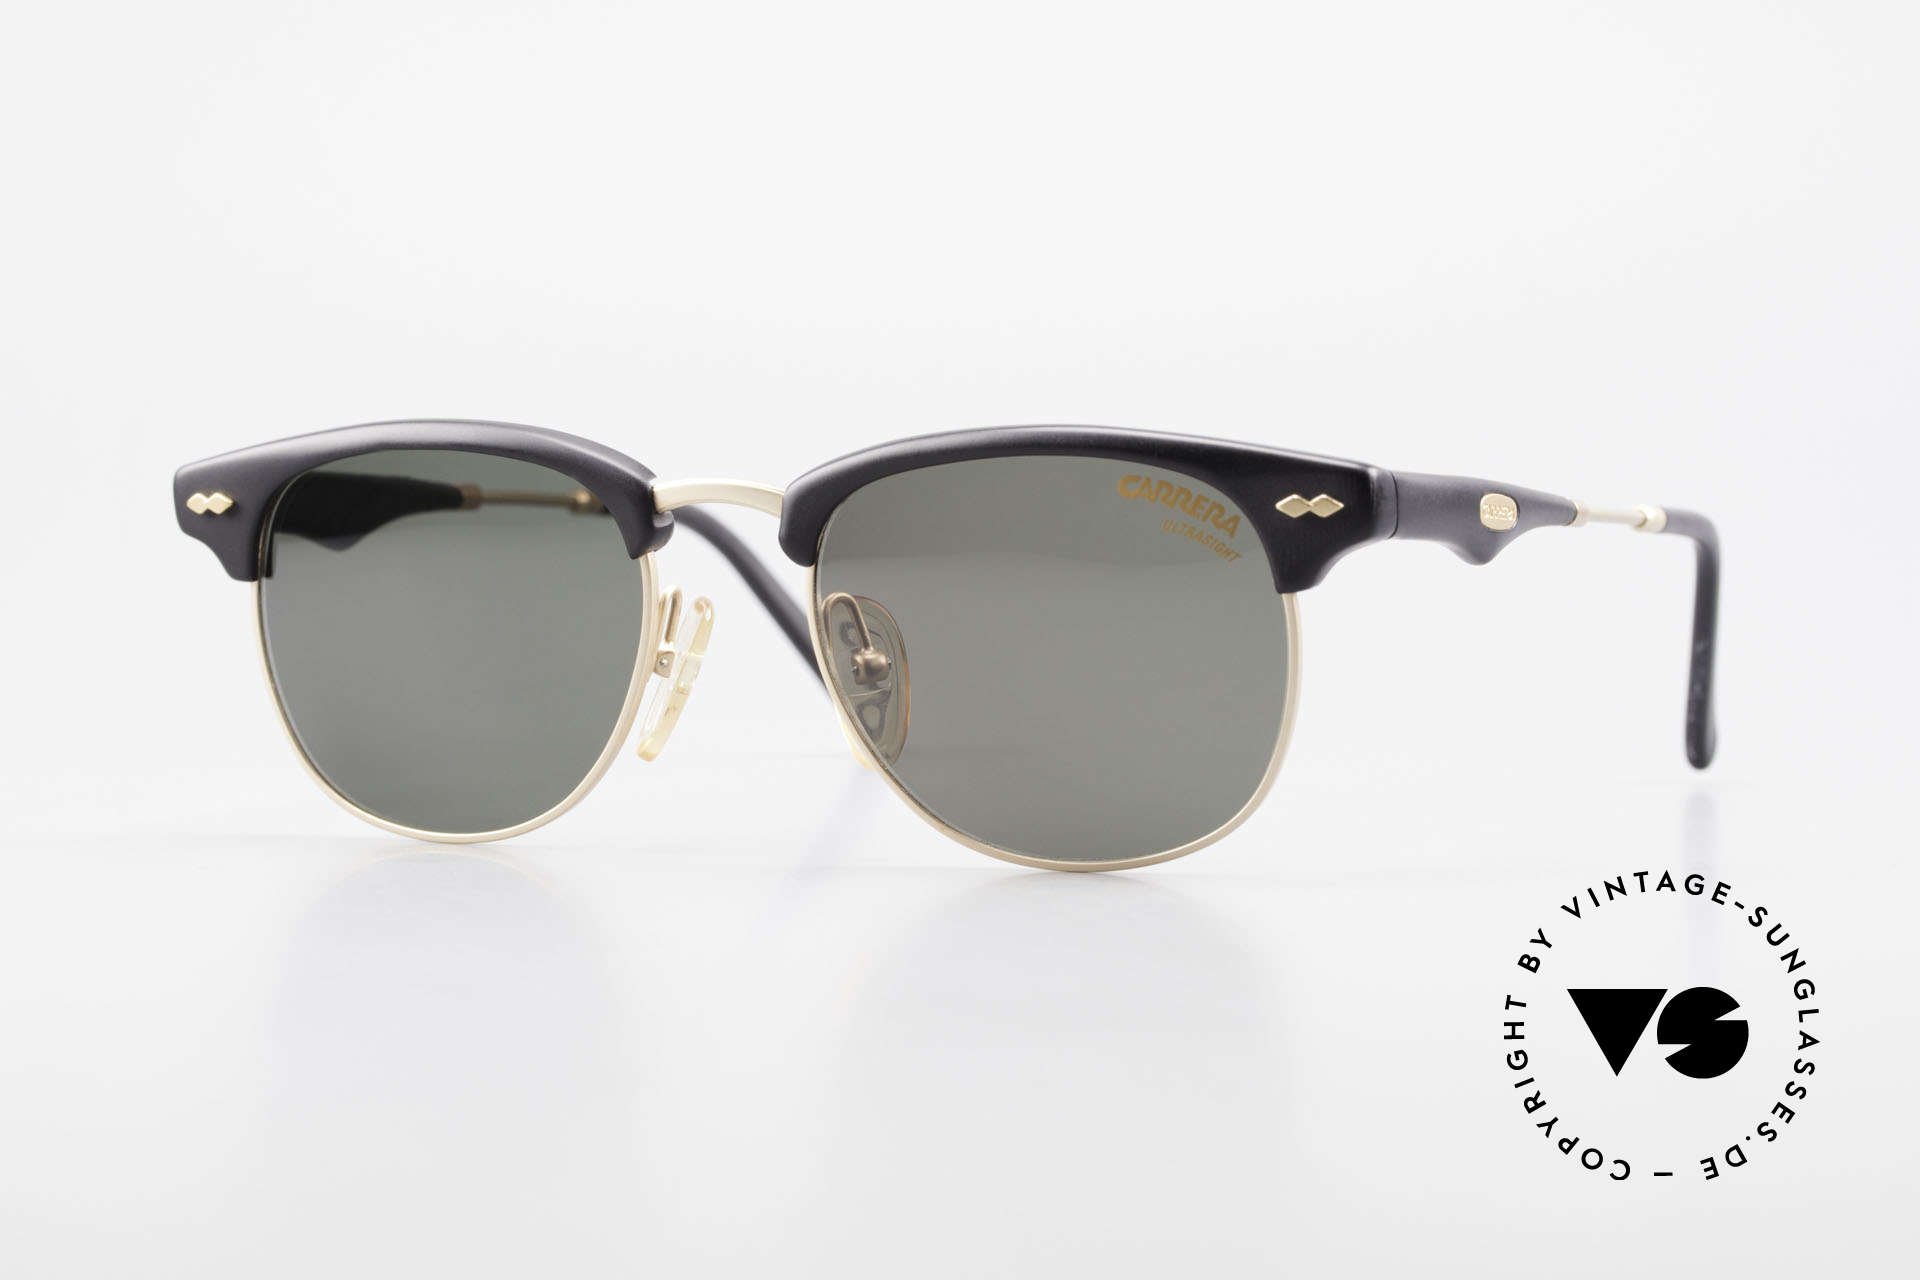 Carrera 5624 Clubmaster Style Sunglasses, timeless vintage CARRERA designer sunglasses + case, Made for Men